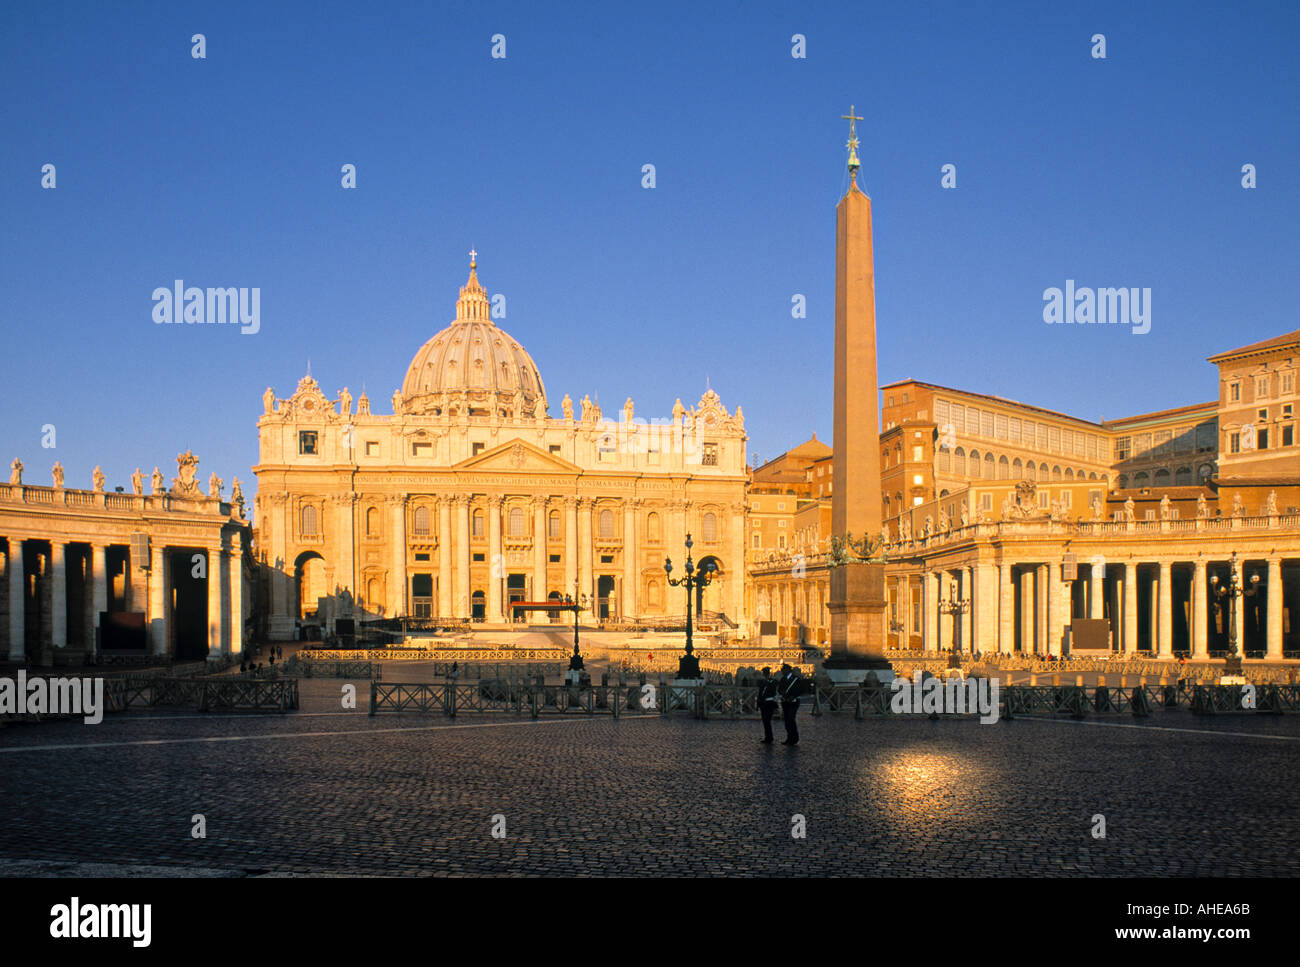 St. Peter's, Vatican City, Rome, Italy - Stock Image